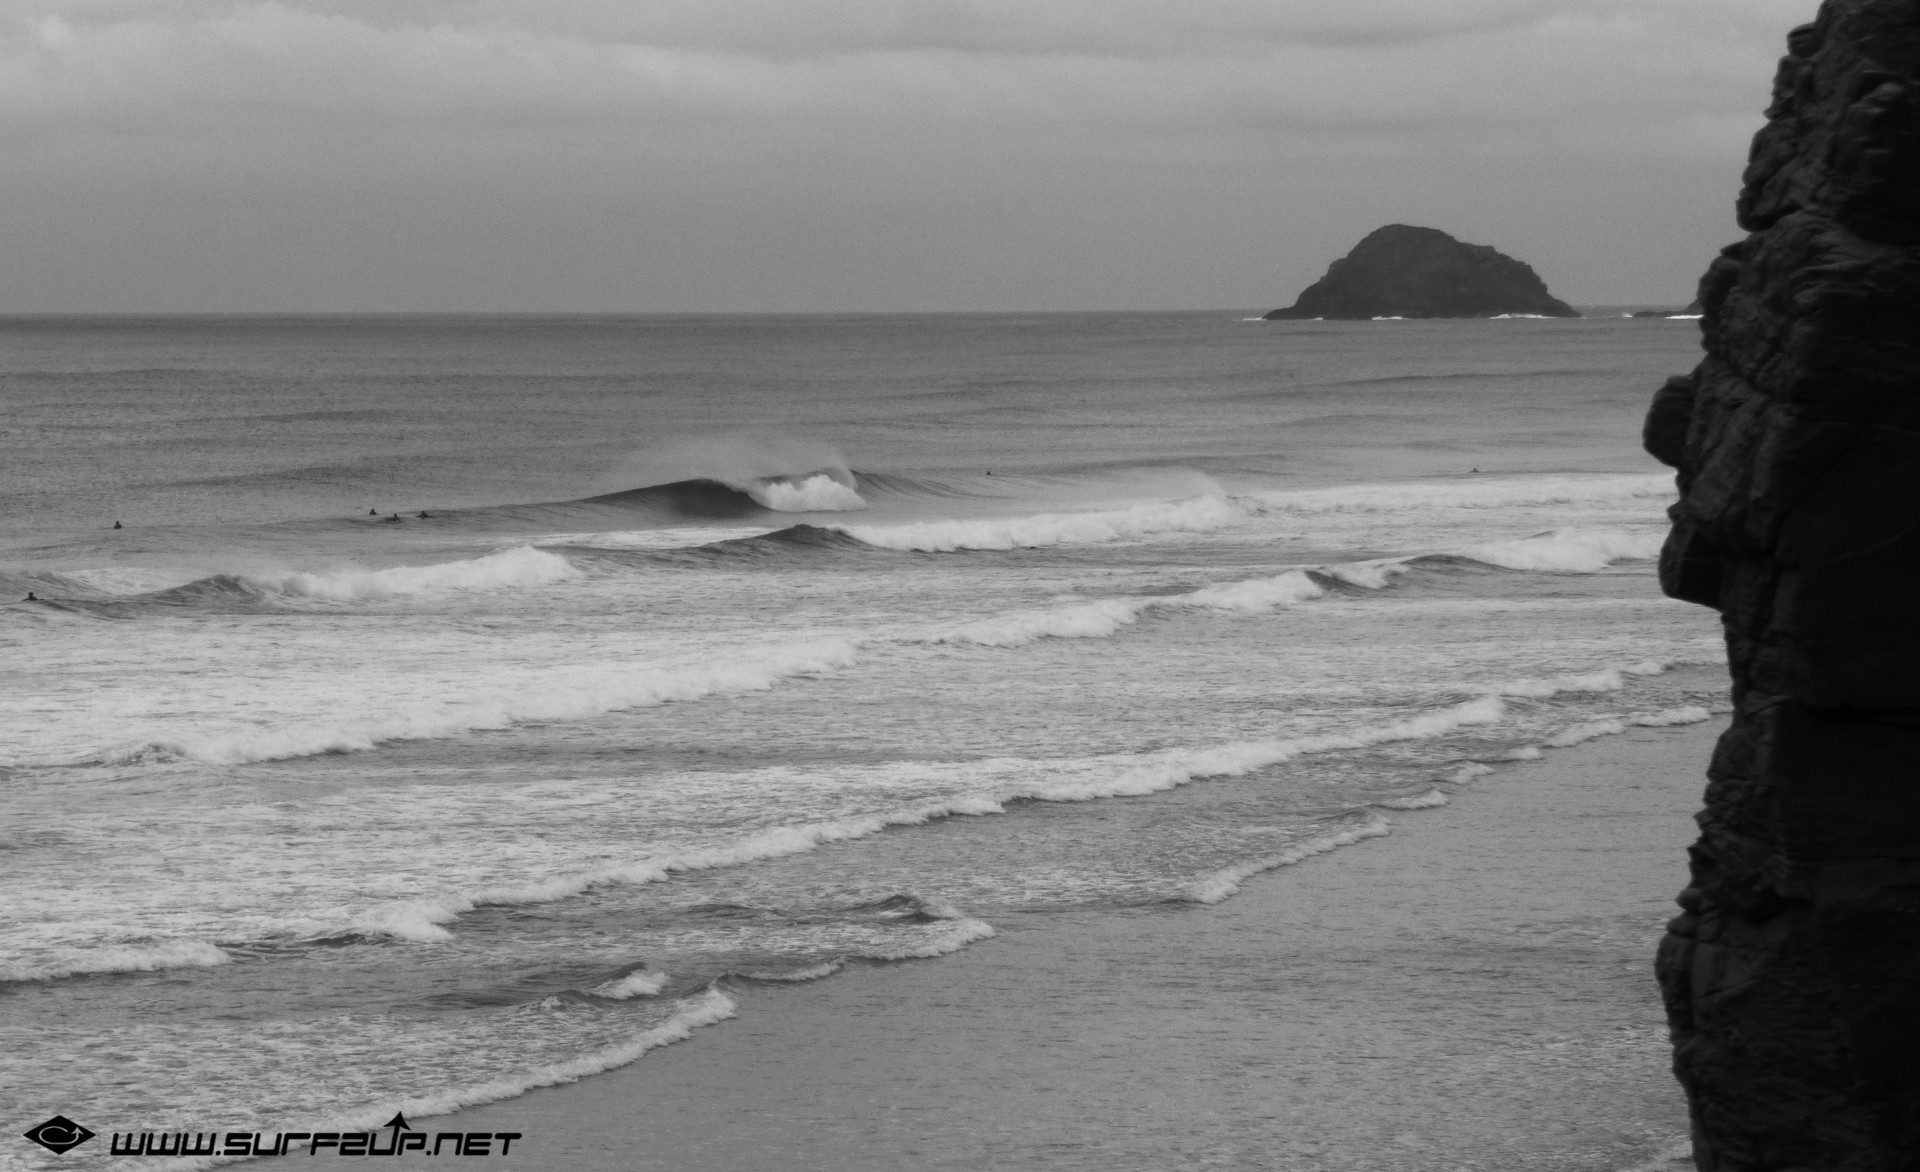 DIGITAL WAVE's photo of Perranporth (Droskyn)